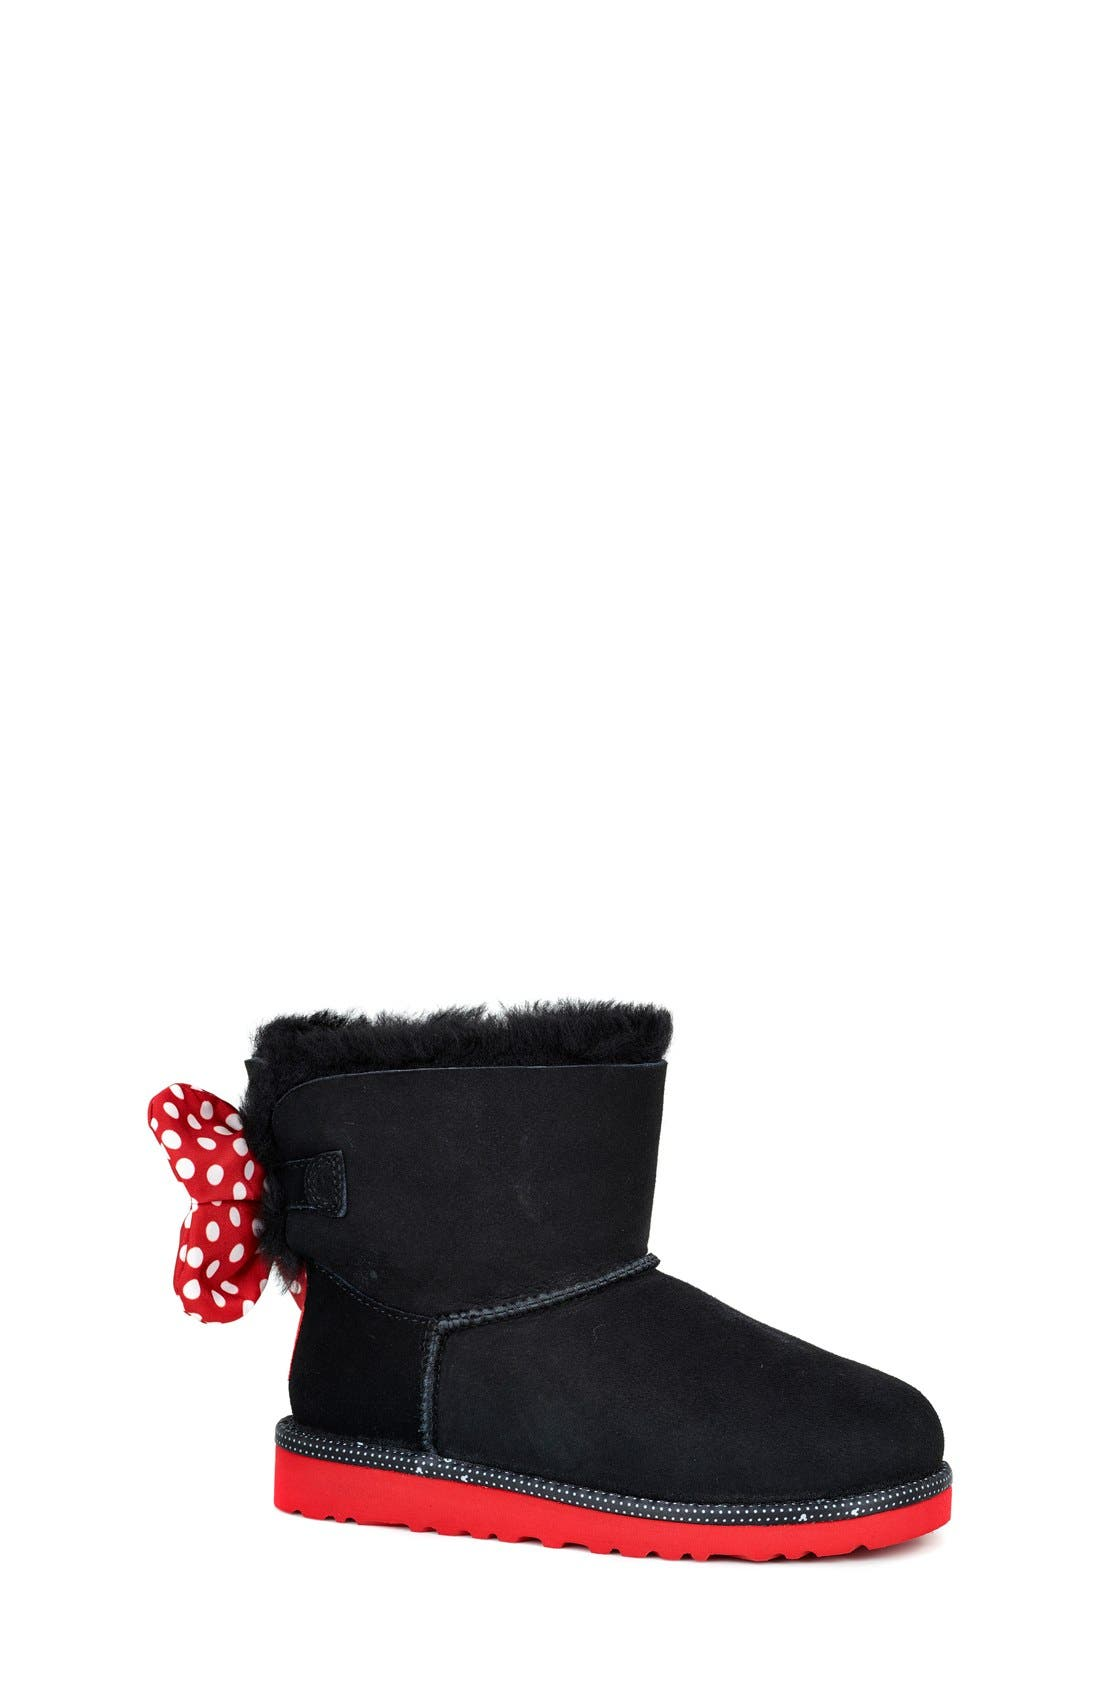 Disney<sup>®</sup> 'Sweetie Bow' Boot, Main, color, 001